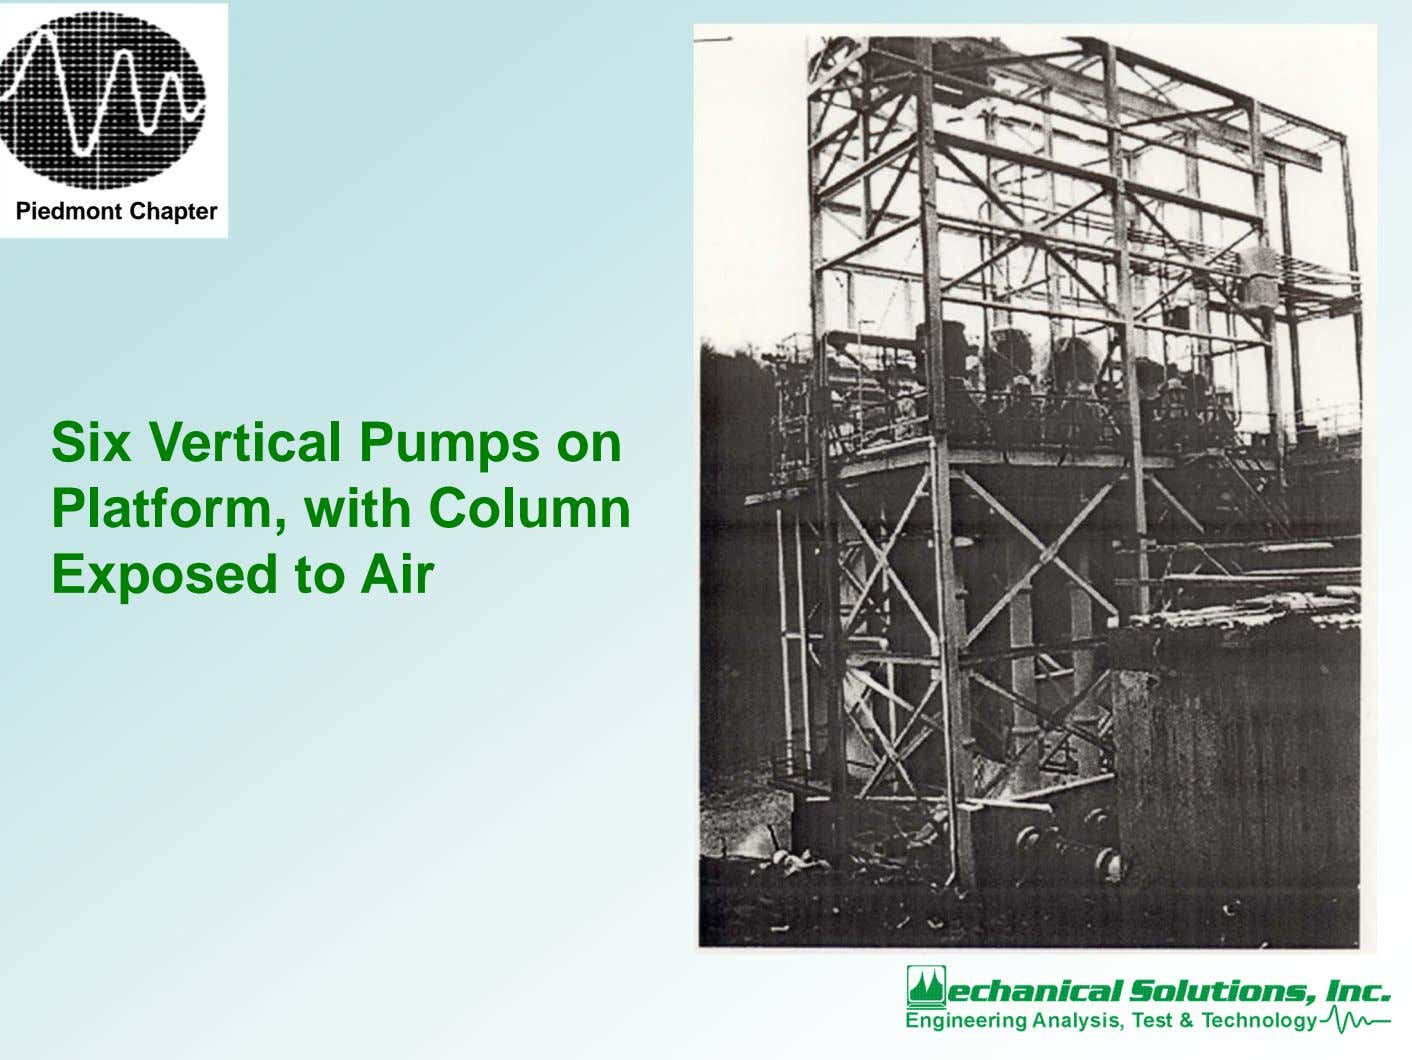 Piedmont Chapter Six Vertical Pumps on Platform, with Column Exposed to Air